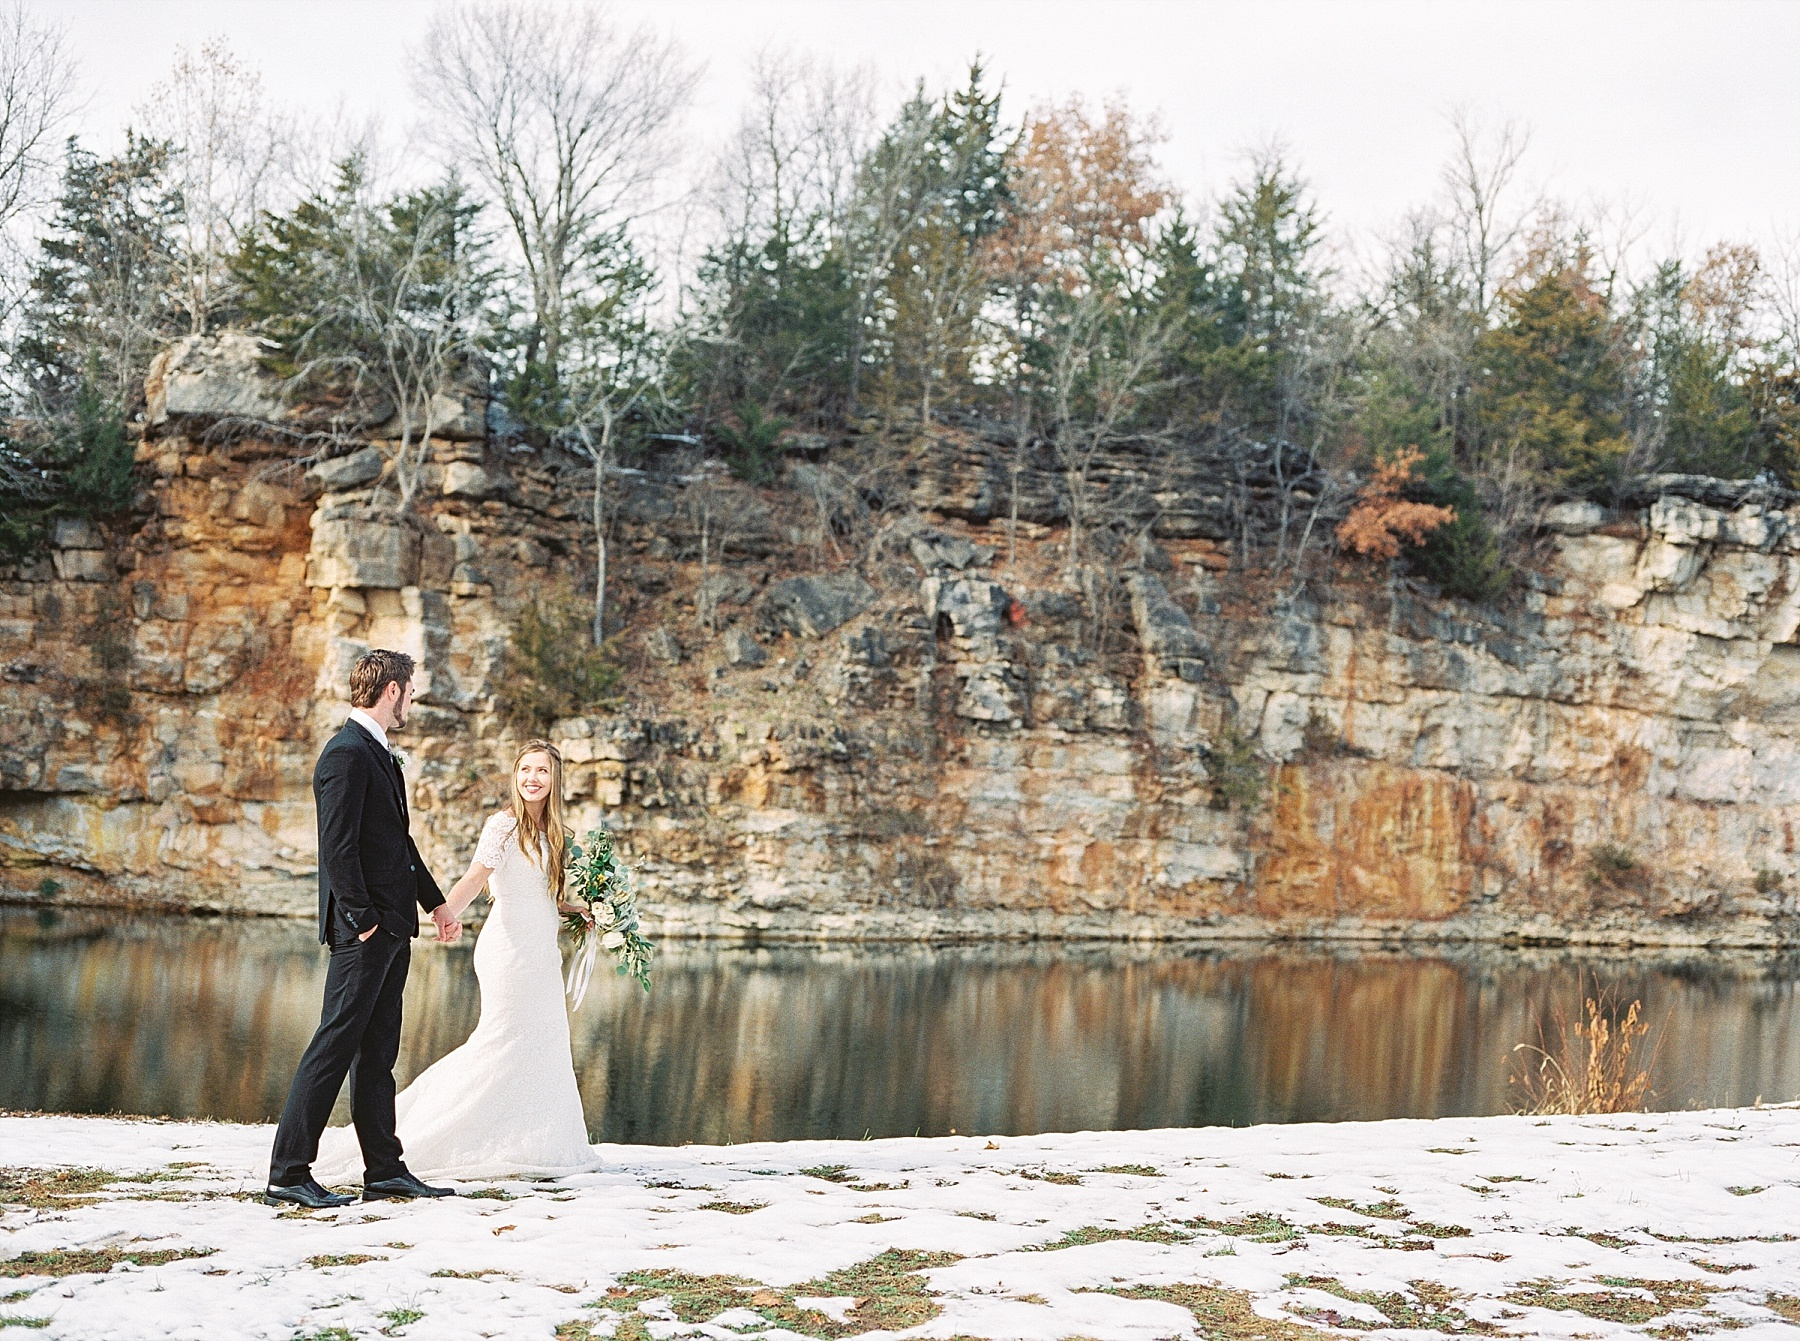 Snowy Winter Wedding at Wildcliff Events Lake With Earthy Jewel Tones and Organic Refined Style by Kelsi Kliethermes Photography Kansas City Missouri Wedding Photographer_0033.jpg